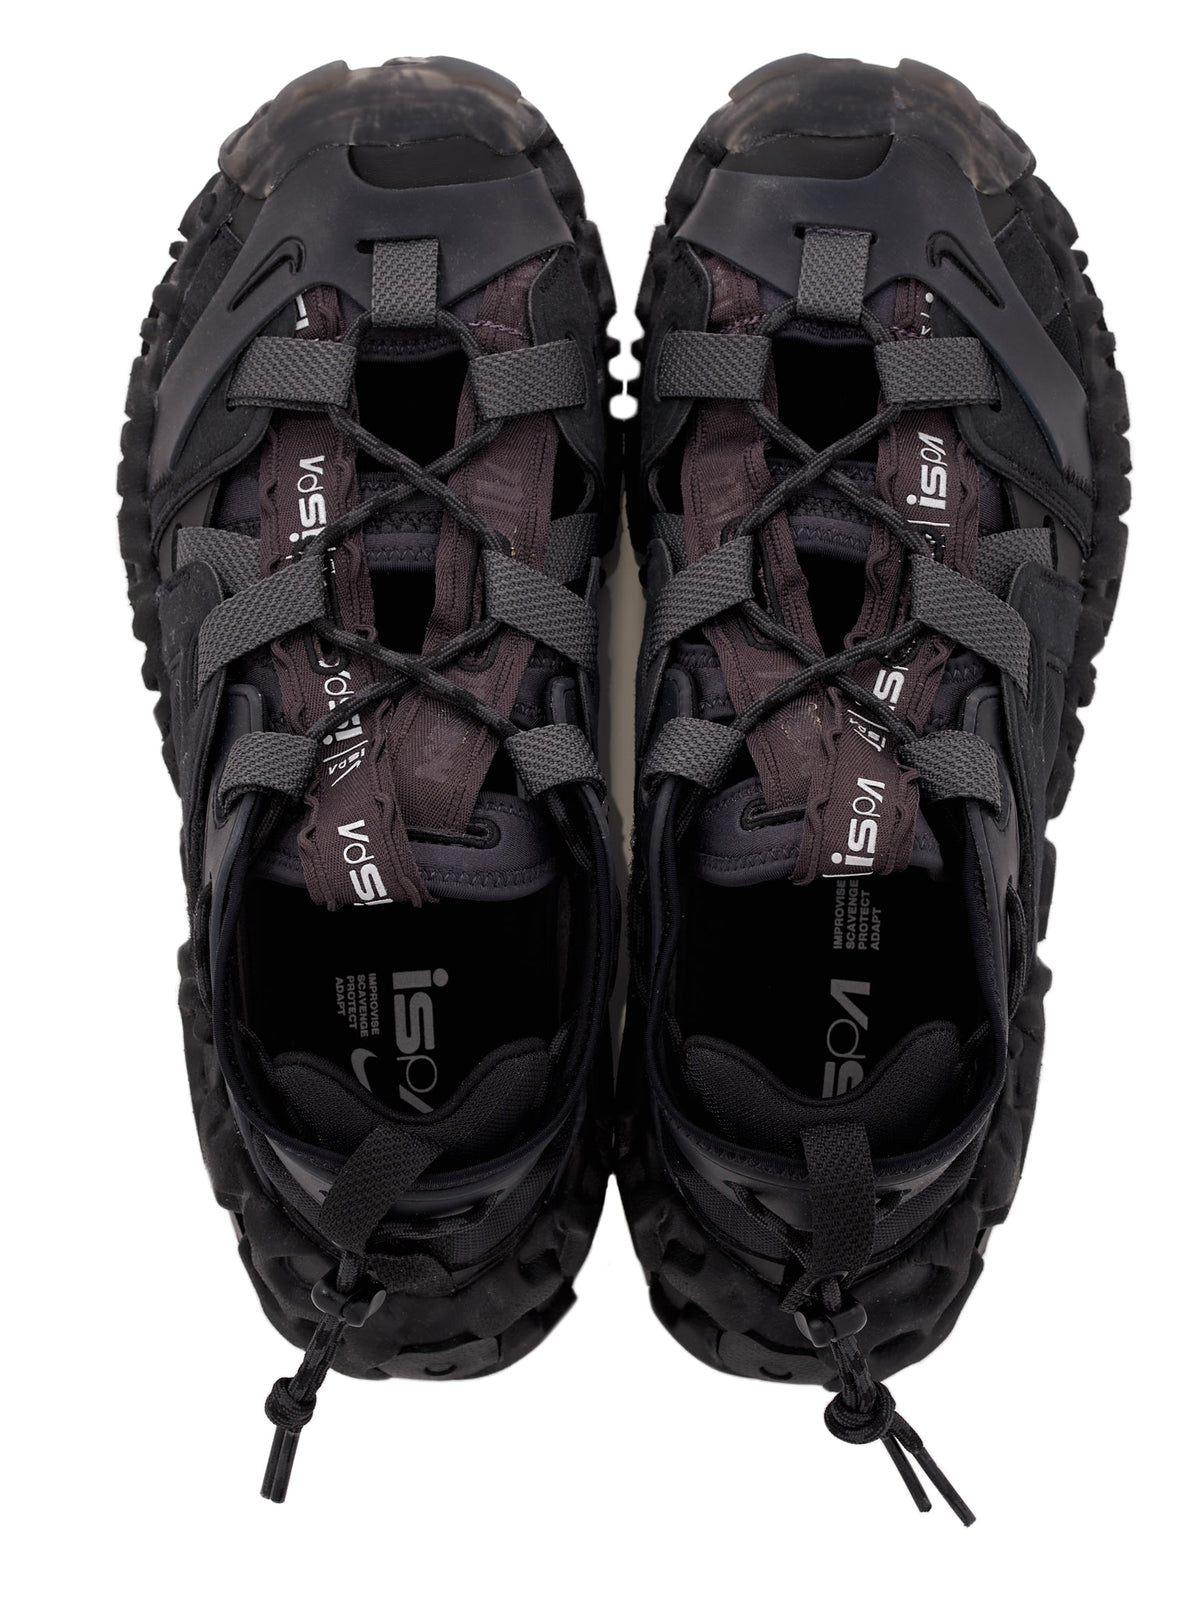 Overreact Sandal ISPA (CQ2230-001-BLACK-THUNDER-GREY)